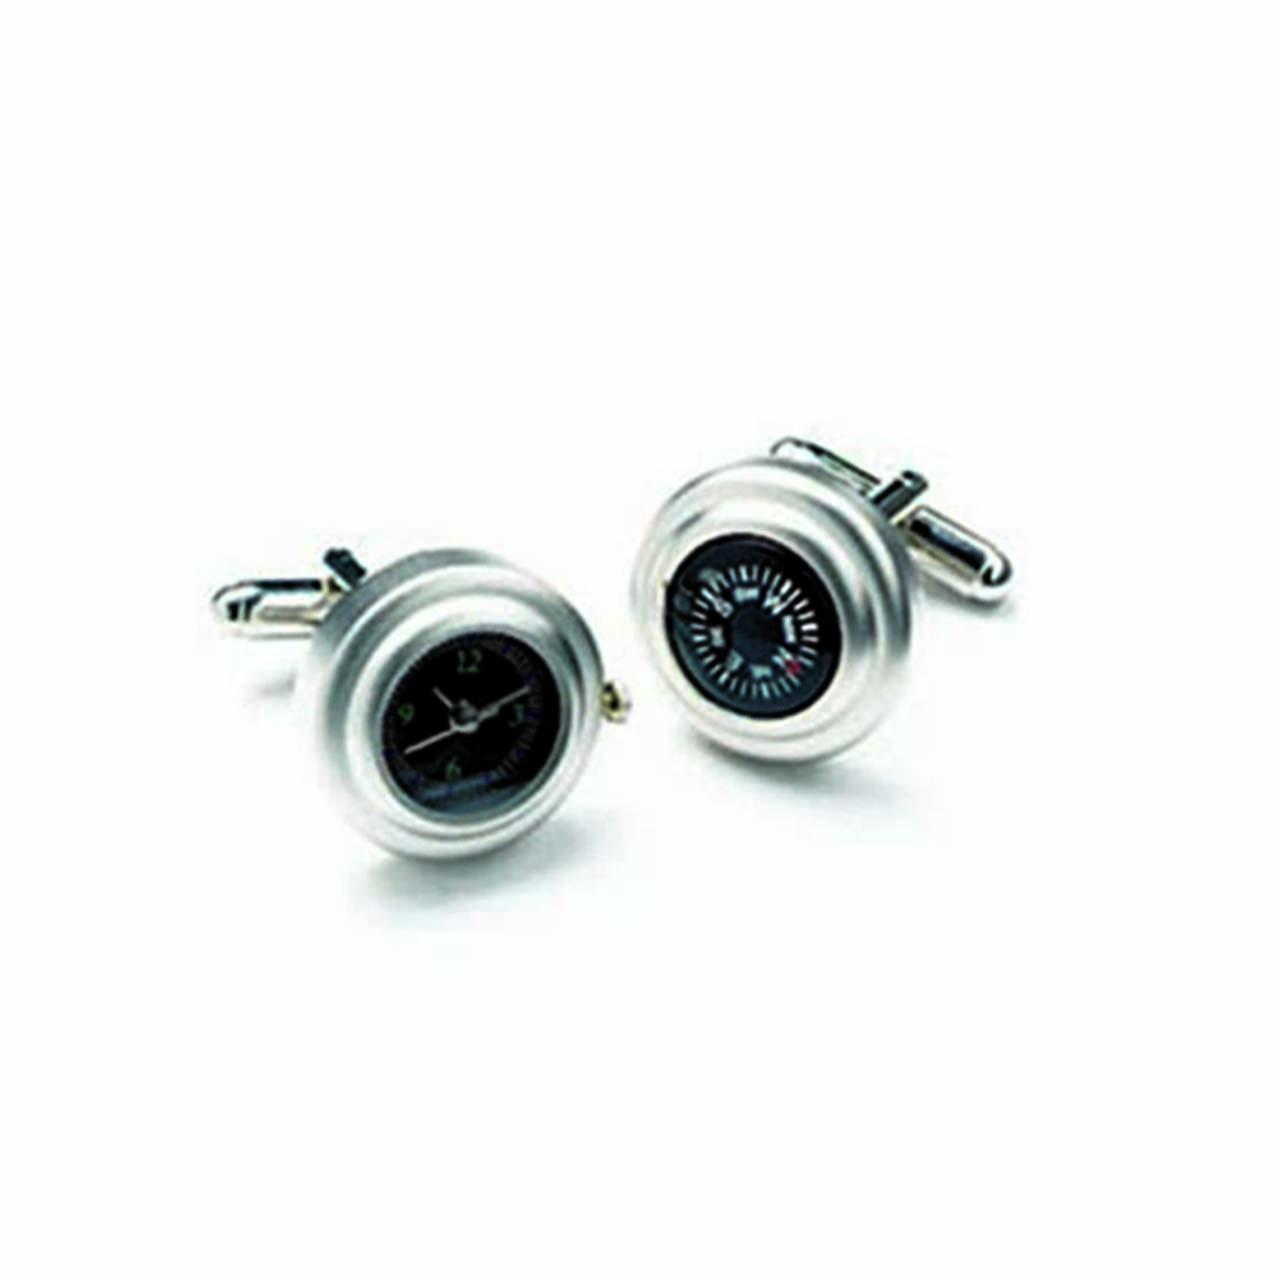 Satin And Rhodium Watch And Compass Cufflinks